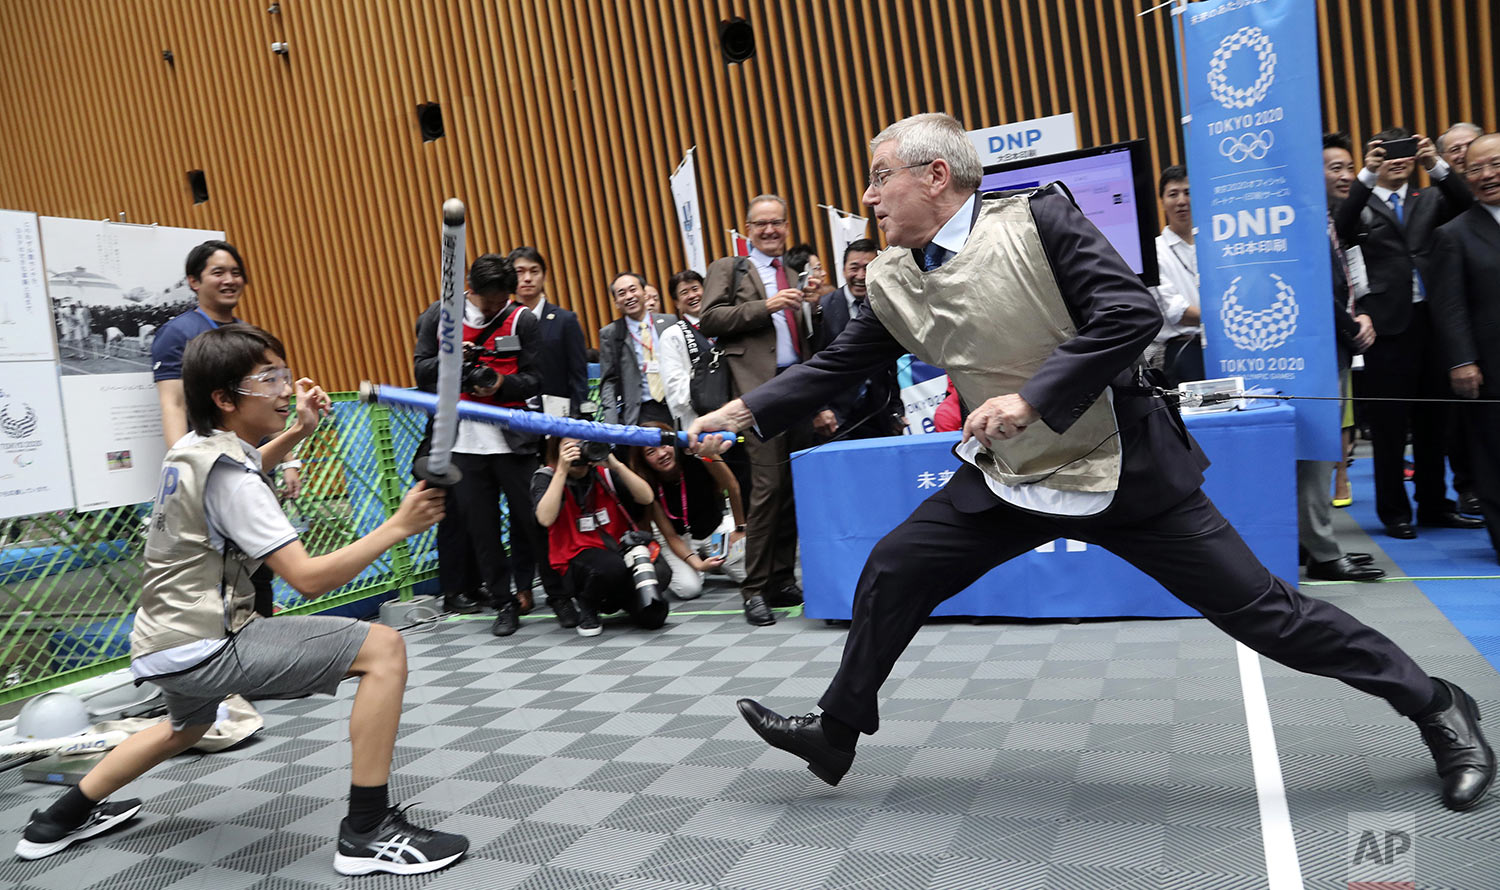 IOC President Thomas Bach, right, demonstrates fencing with Japanese junior high school student Yui Hashimoto during a Olympic Games Tokyo 2020 One year to Go ceremony event in Tokyo, July 24, 2019. (AP Photo/Koji Sasahara, Pool)